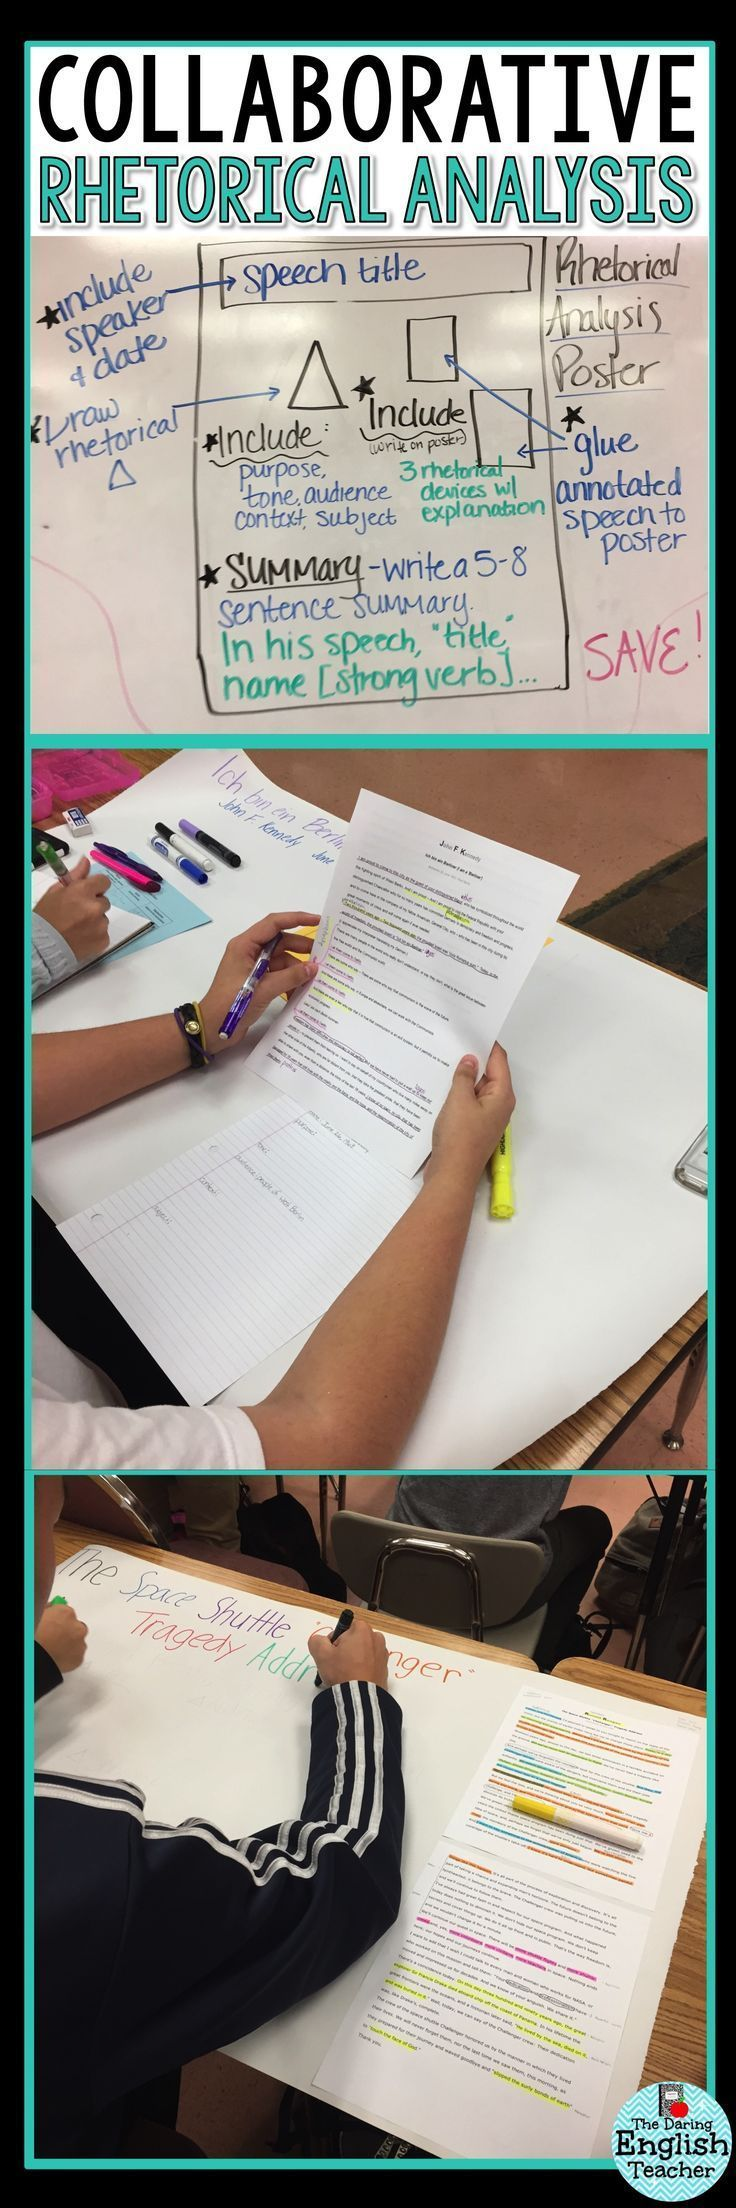 Make rhetorical analysis engaging with a fun and rigorous collaborative poster project. Ideal for middle school and high school students.